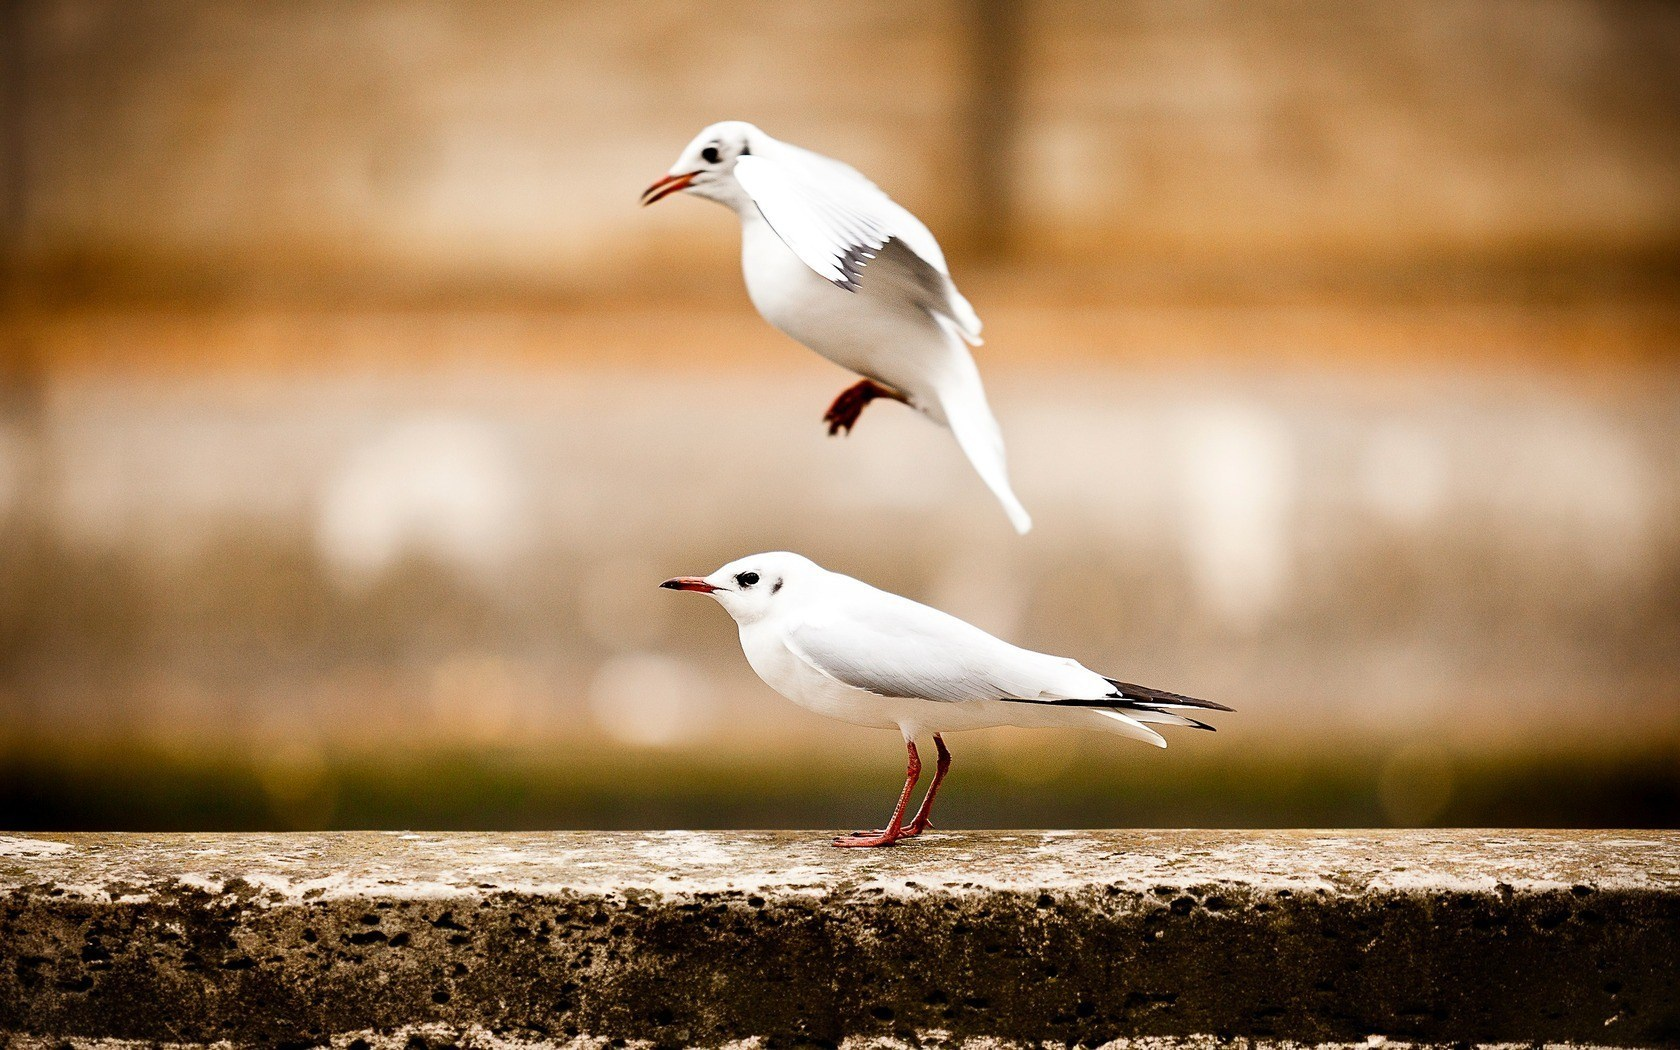 seagulls picture